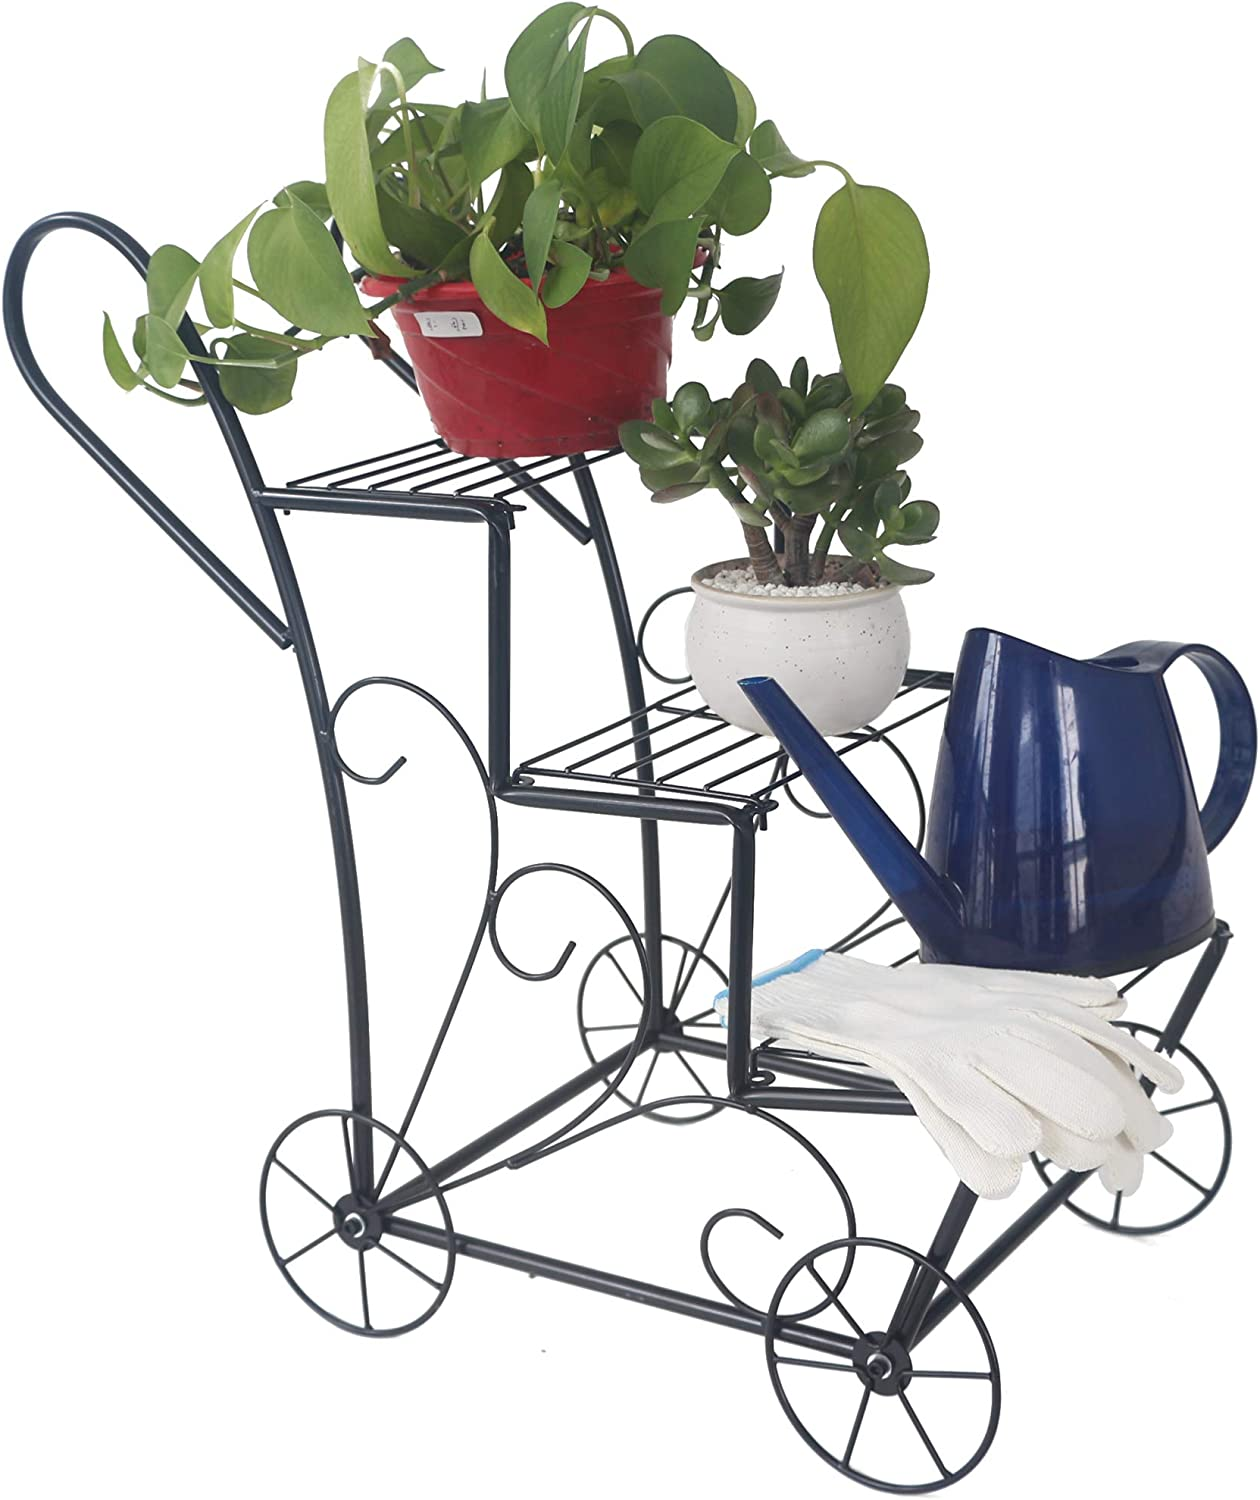 Aflowa Garden Cart Plant Stand Metal Potted Plant Holder(Plant Pot NOT Included) Plants Display Rack for Indoor Outdoor Yard Patio Parisian Style Decoration